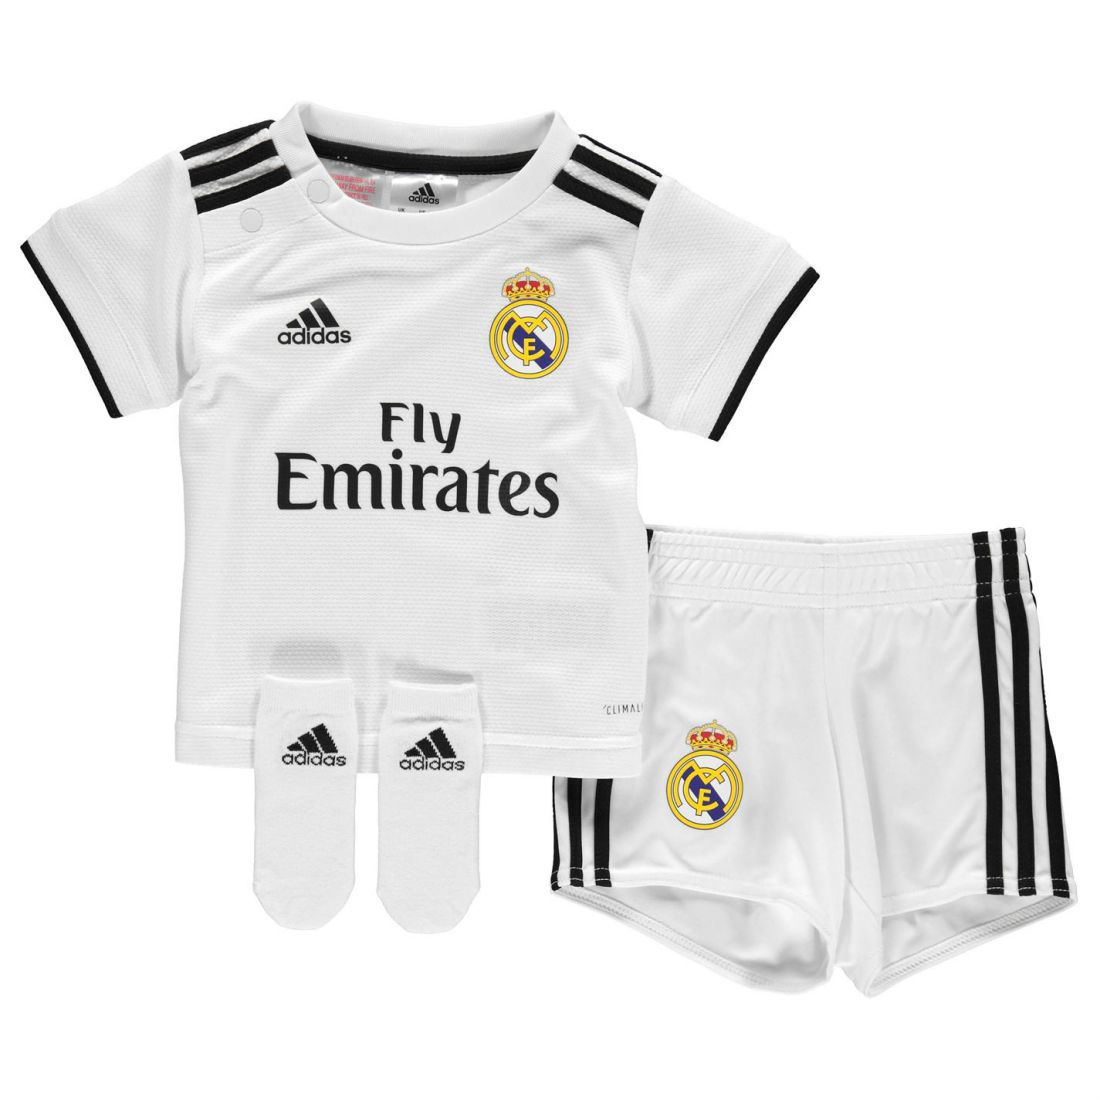 13a9ffeee00 adidas Kids Boys Real Madrid Home Baby Kit 2018 2019 Domestic ...